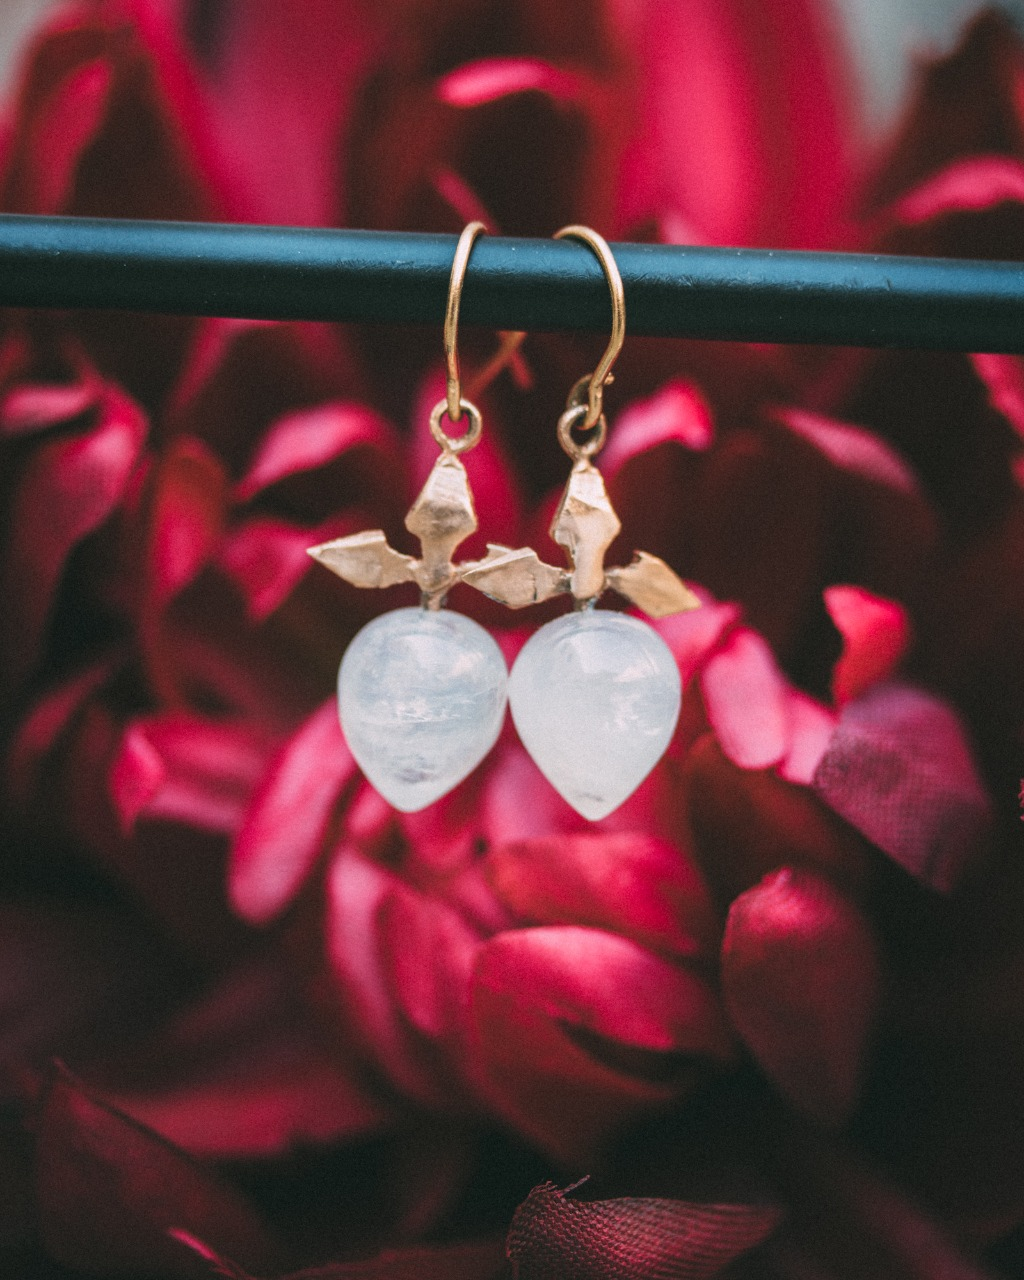 BESPOKE JEWELRY BORN OUT OF LOVE & DEVOTION. INSPIRED BY HISTORY. ALWAYS CUSTOM & UNIQUE Vena is known for its bespoke wedding